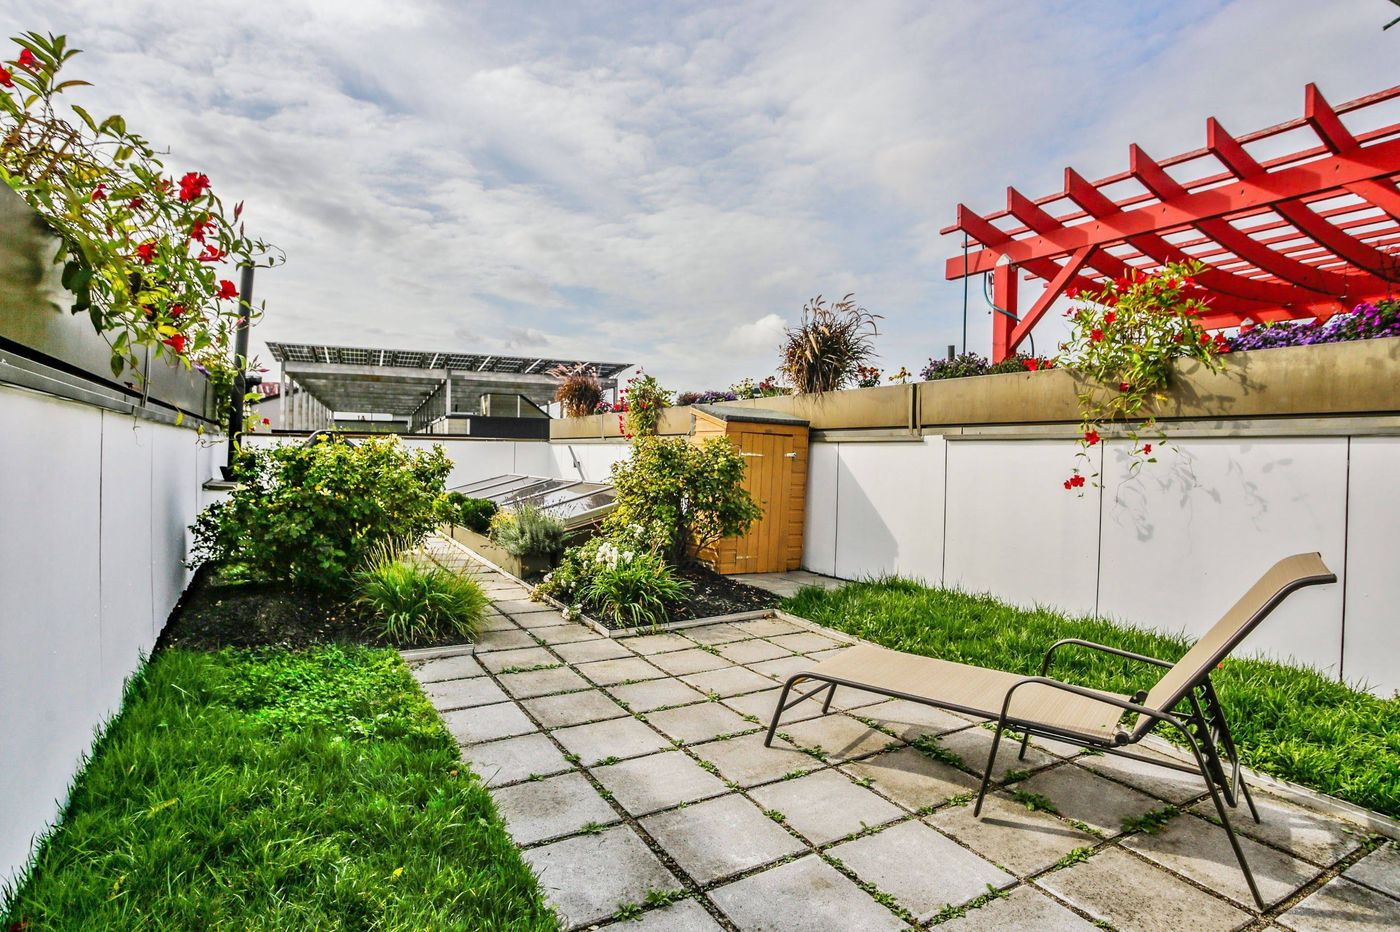 On the market: Green condo in Northern Liberties for $679,000